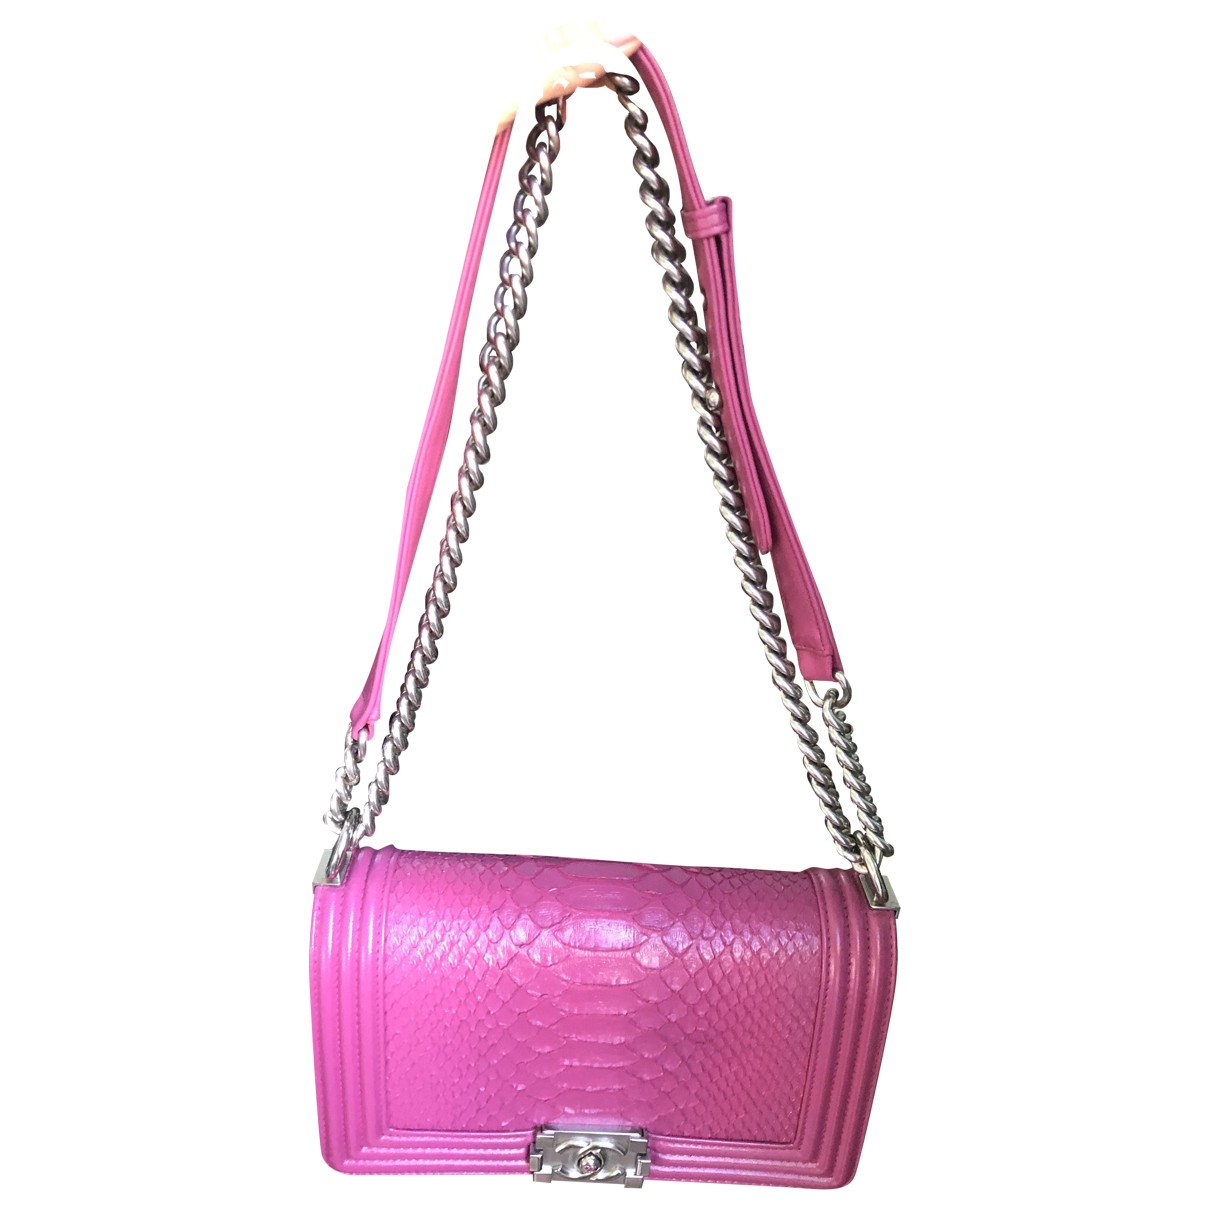 Chanel Boy Handtasche in  Rosa Python